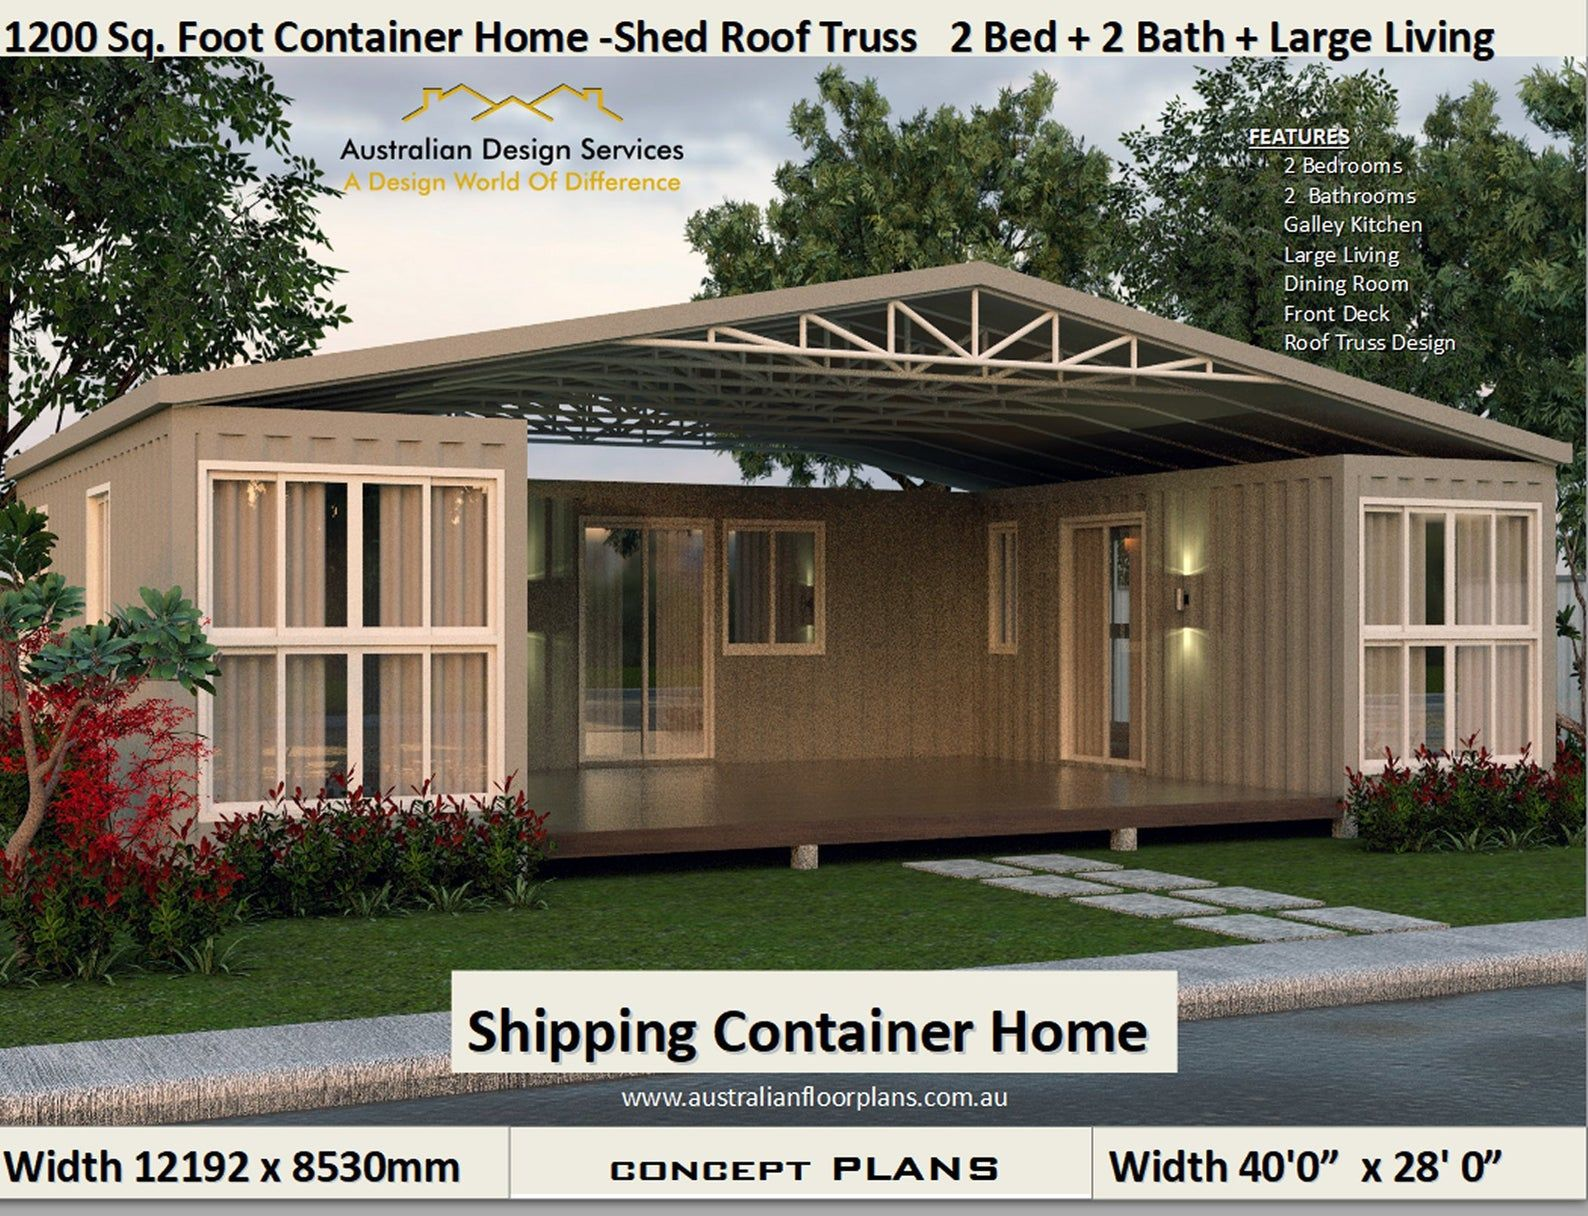 Best Selling Shipping Container House Plans 1200 Sq Foot Etsy In 2020 Container House Container House Plans Container House Design